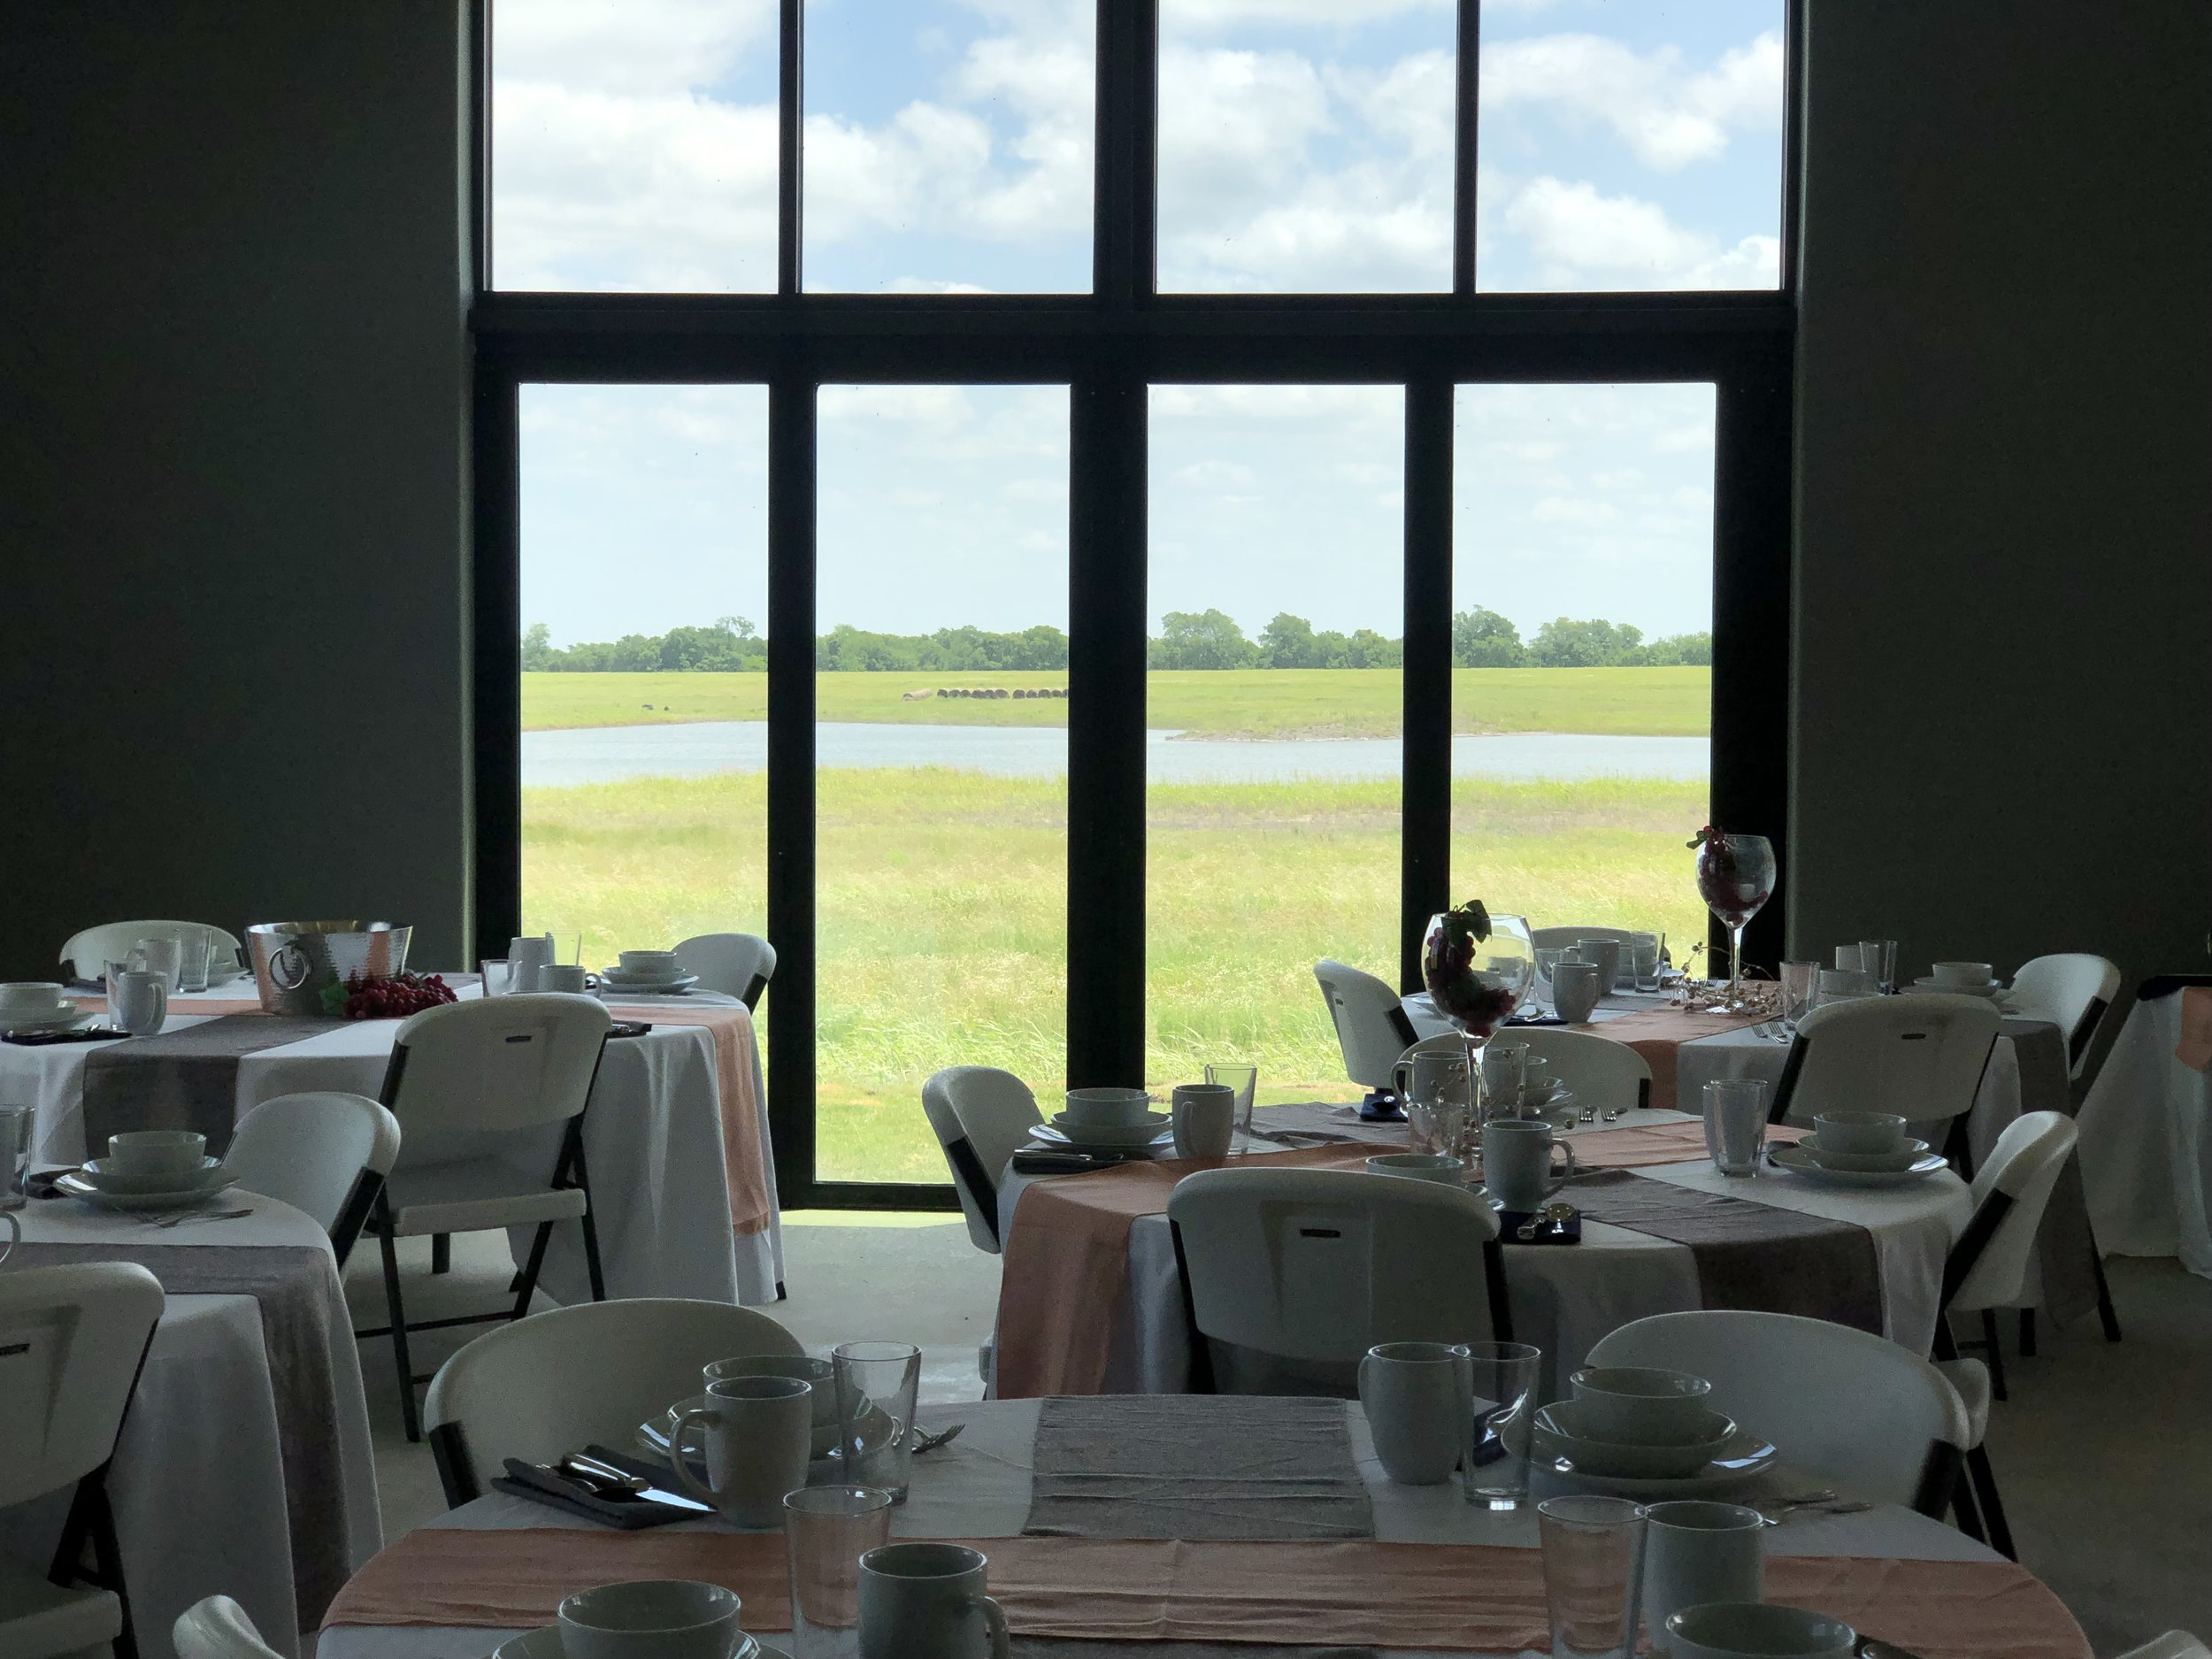 FarmResort Dinner Set Up with Chairs and Doors Closed.jpg